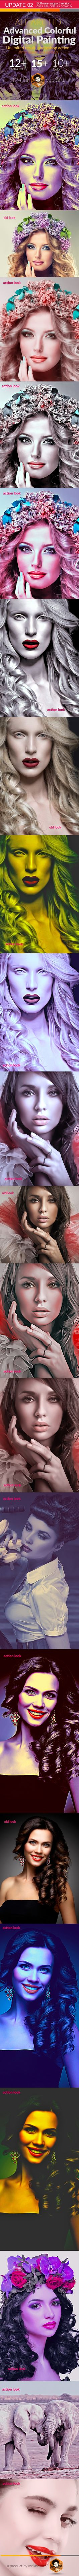 Advanced Colorful Digital Painting — Photoshop ATN #artist #Advanced Colorful Digital Painting • Available here → https://graphicriver.net/item/advanced-colorful-digital-painting/17361488?ref=pxcr